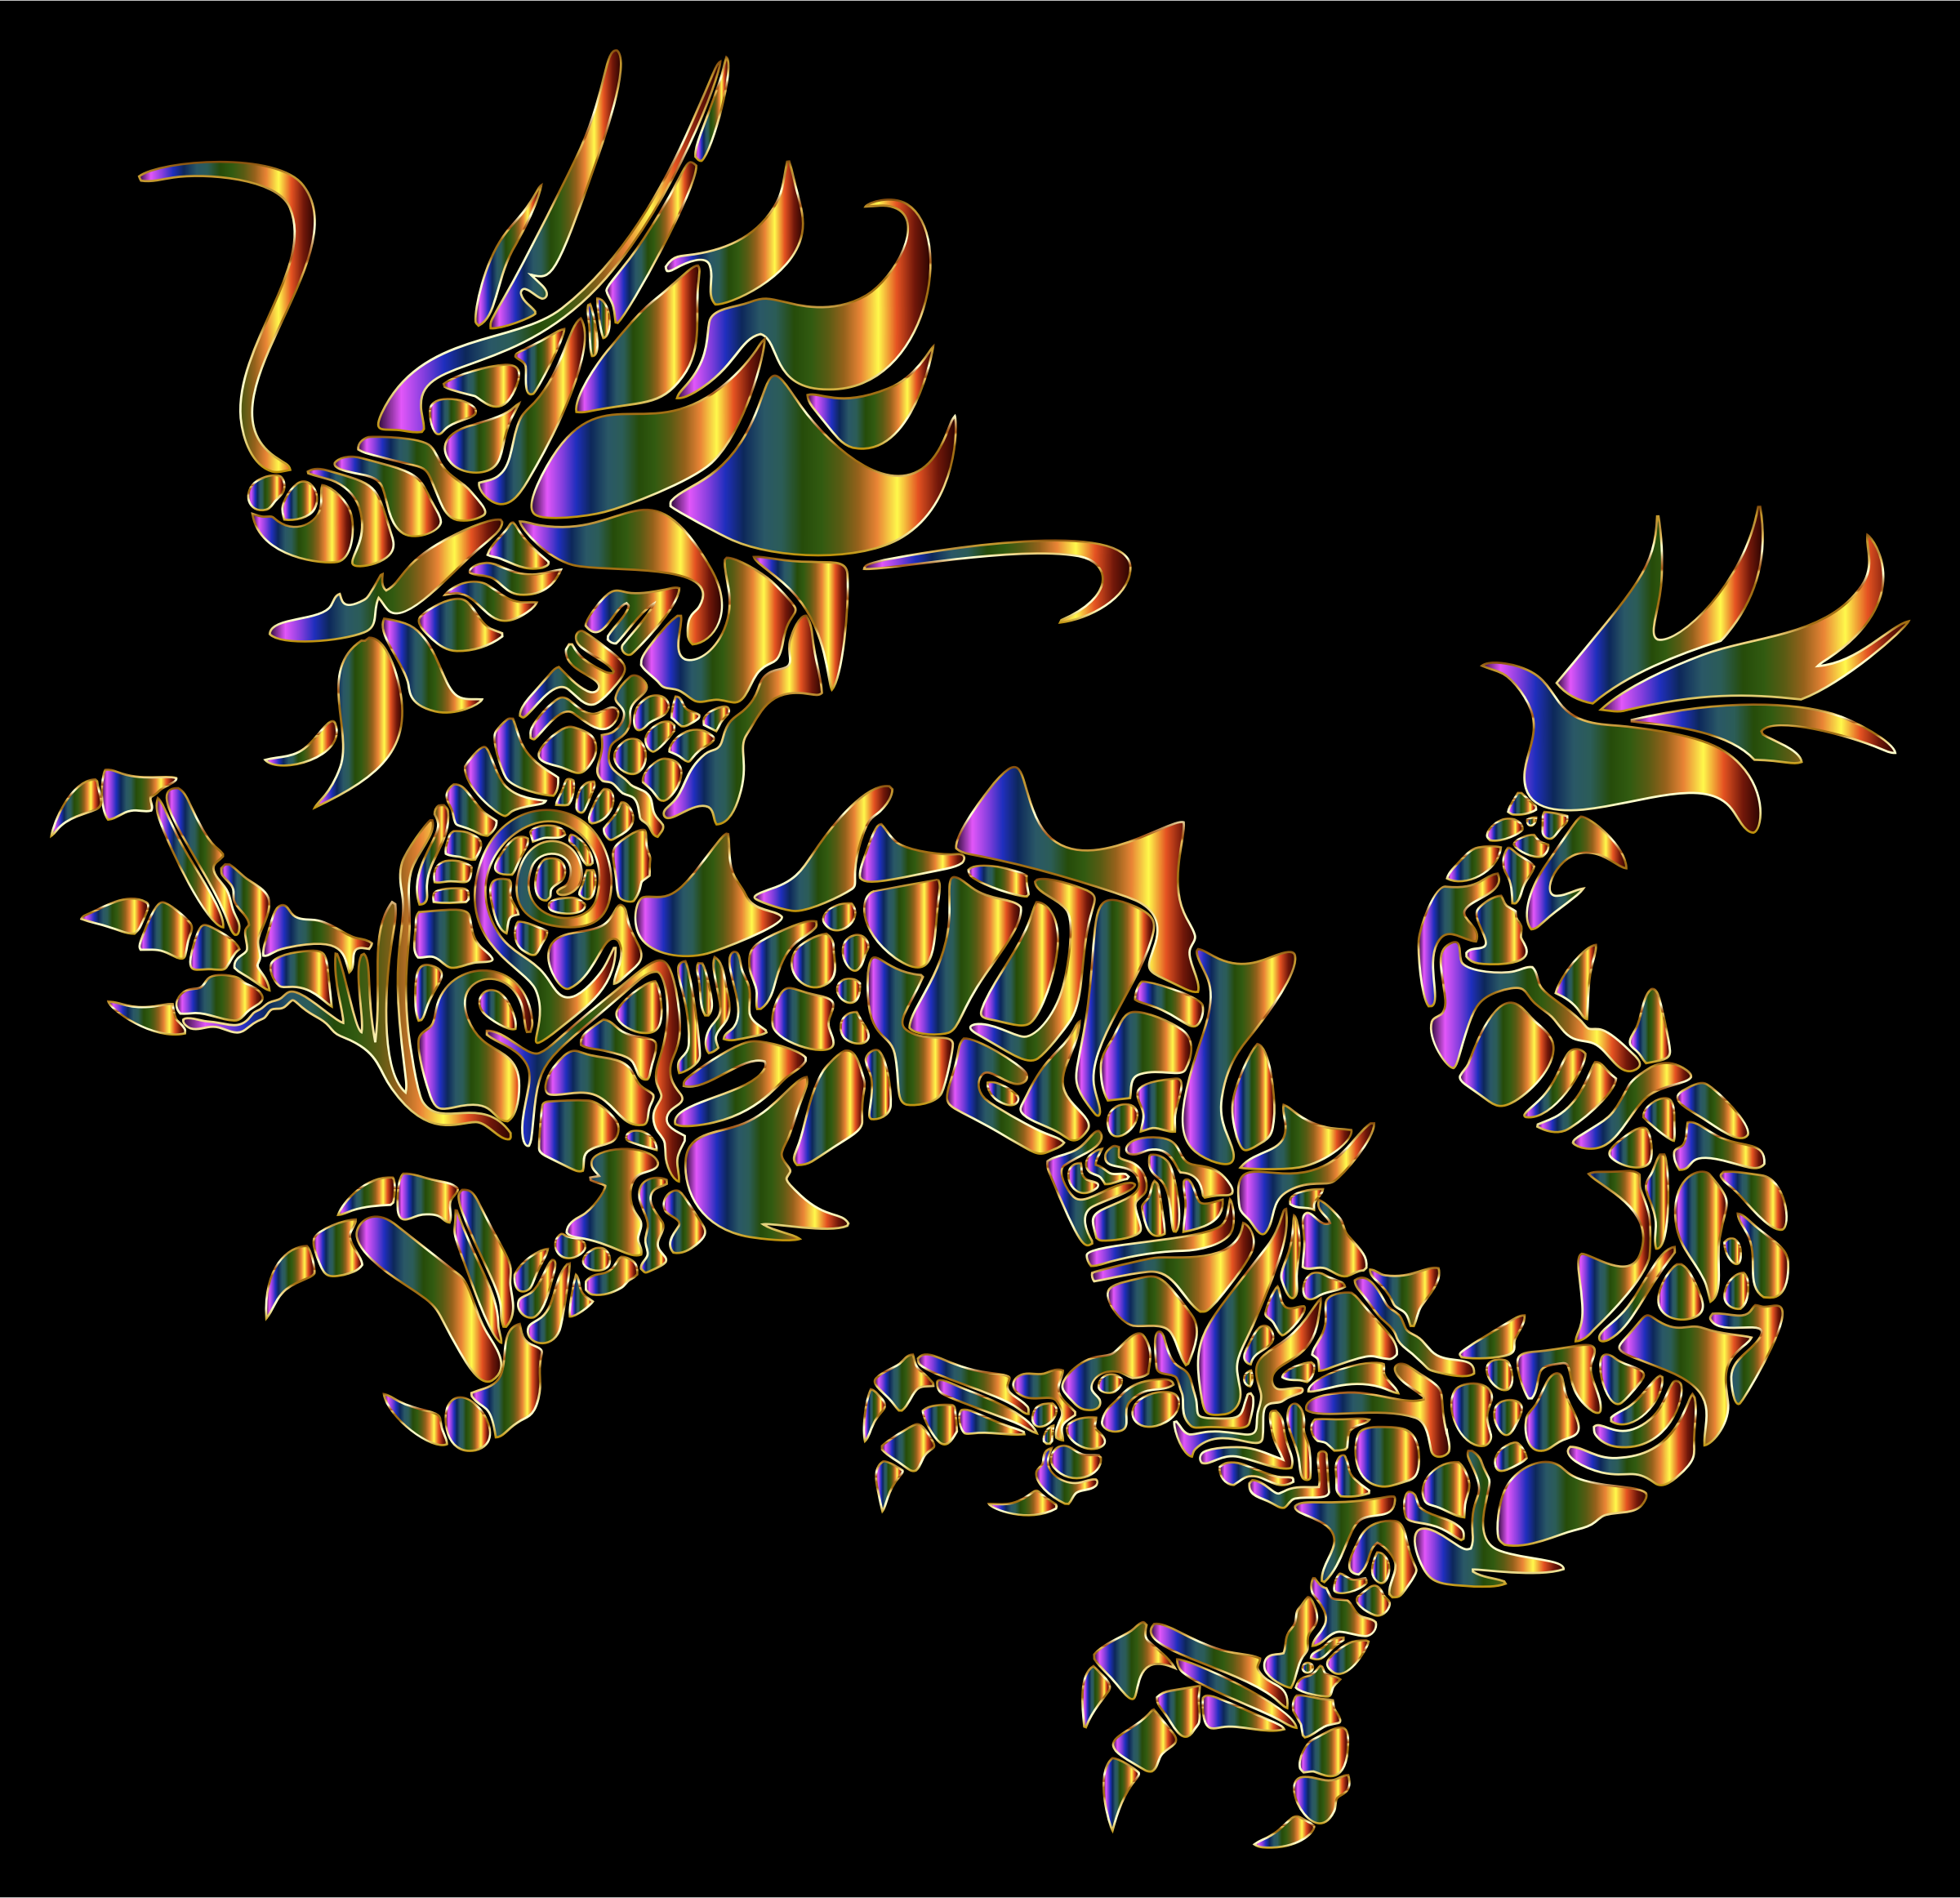 Chromatic Tribal Asian Dragon Silhouette by GDJ